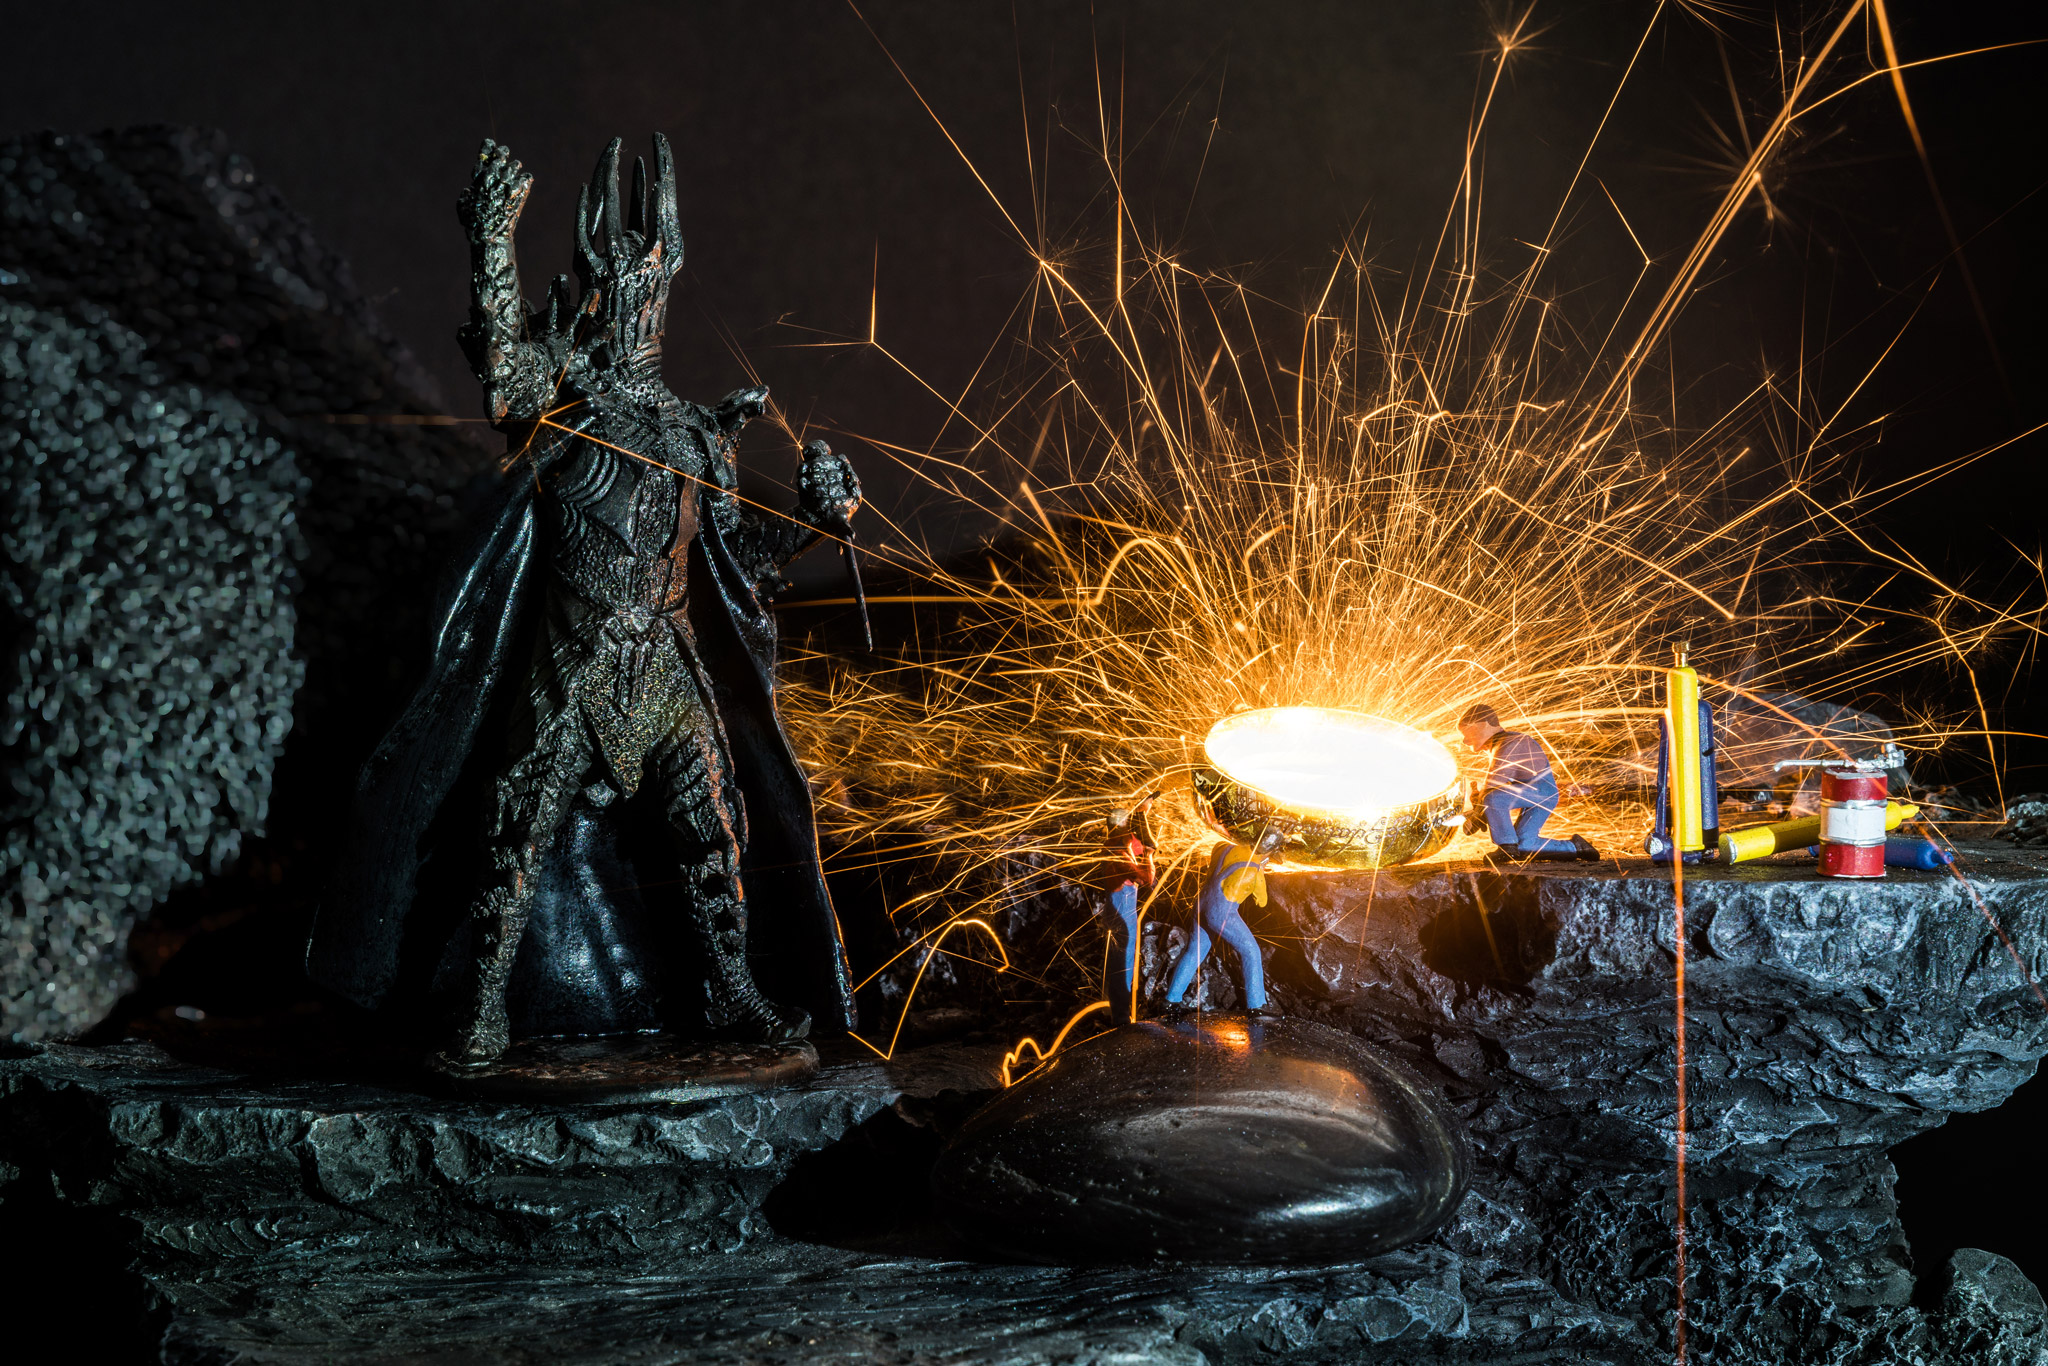 H0-Helden: Sauron's Ring (Foto: Andy Ilmberger)